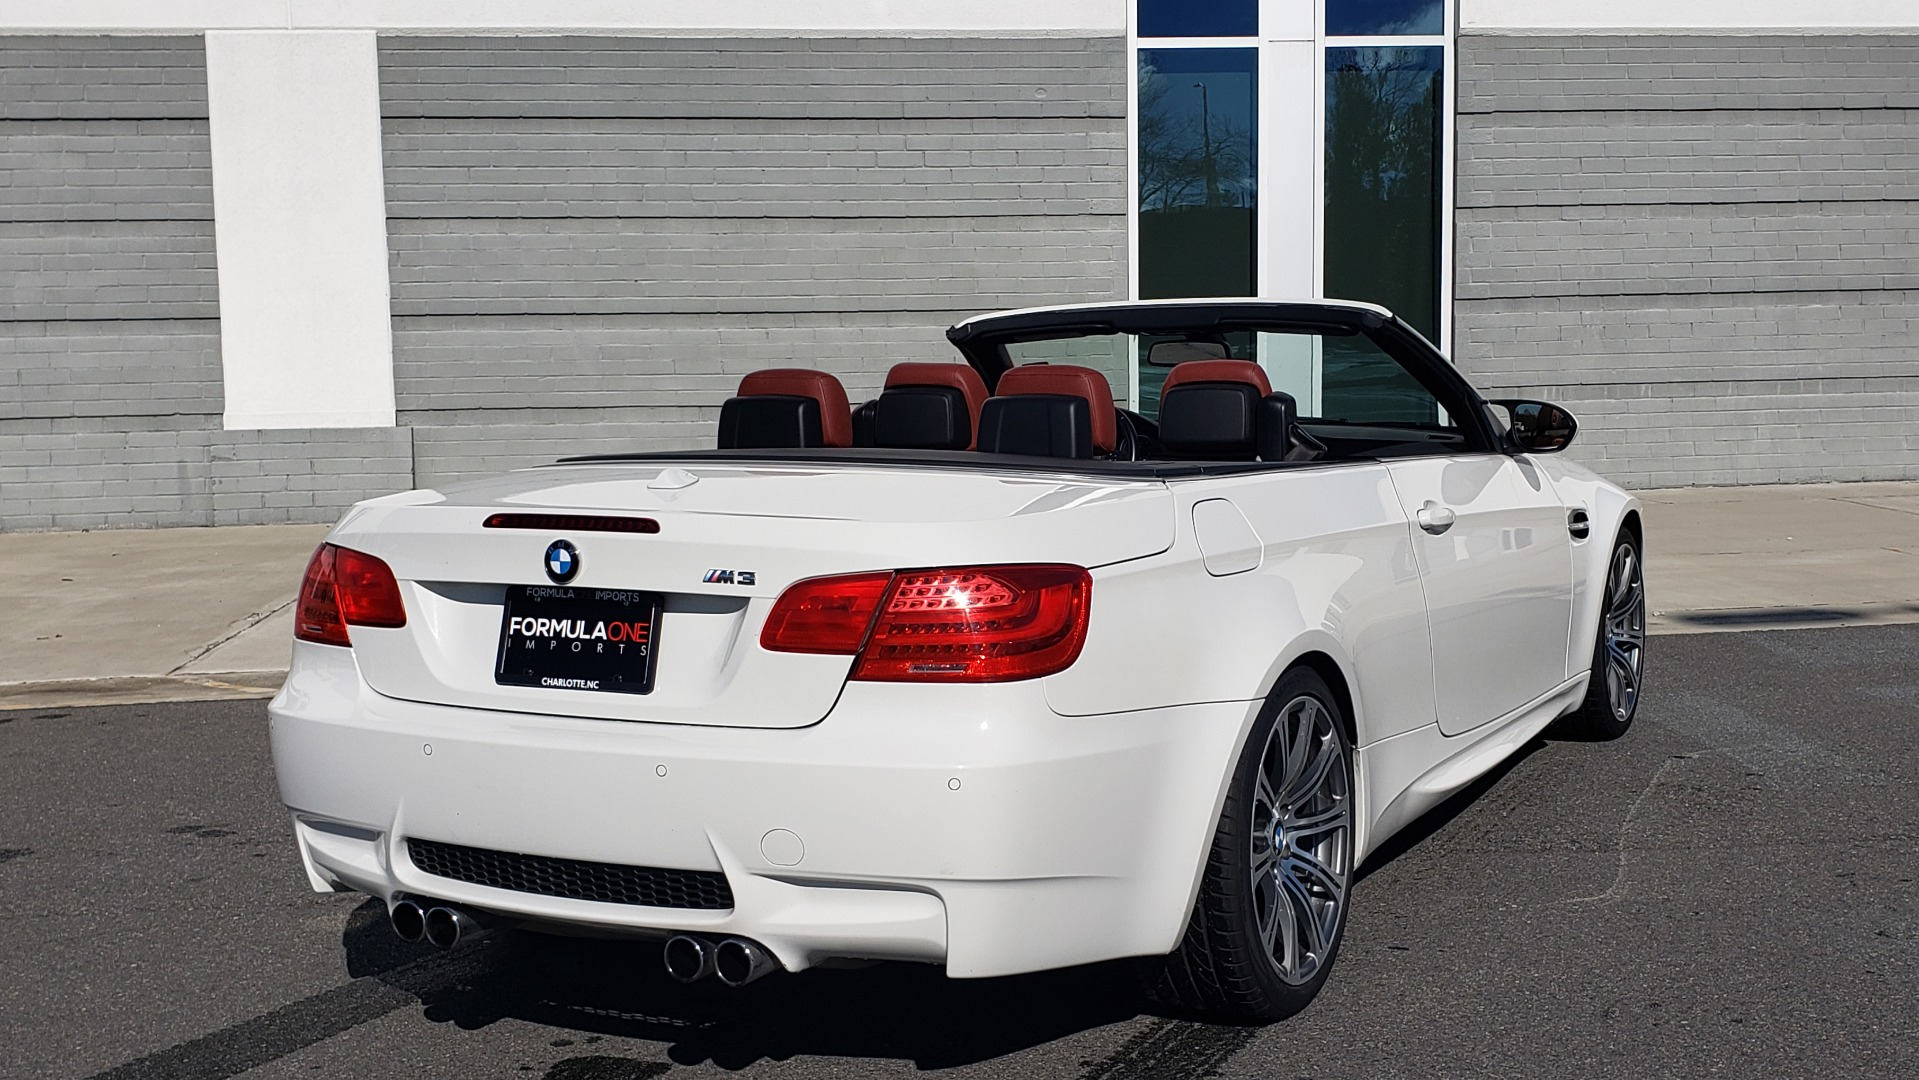 Used 2012 BMW M3 CONVERTIBLE / PREM PKG / NAV / M-DOUBLE CLUTCH AUTOMATIC for sale Sold at Formula Imports in Charlotte NC 28227 3